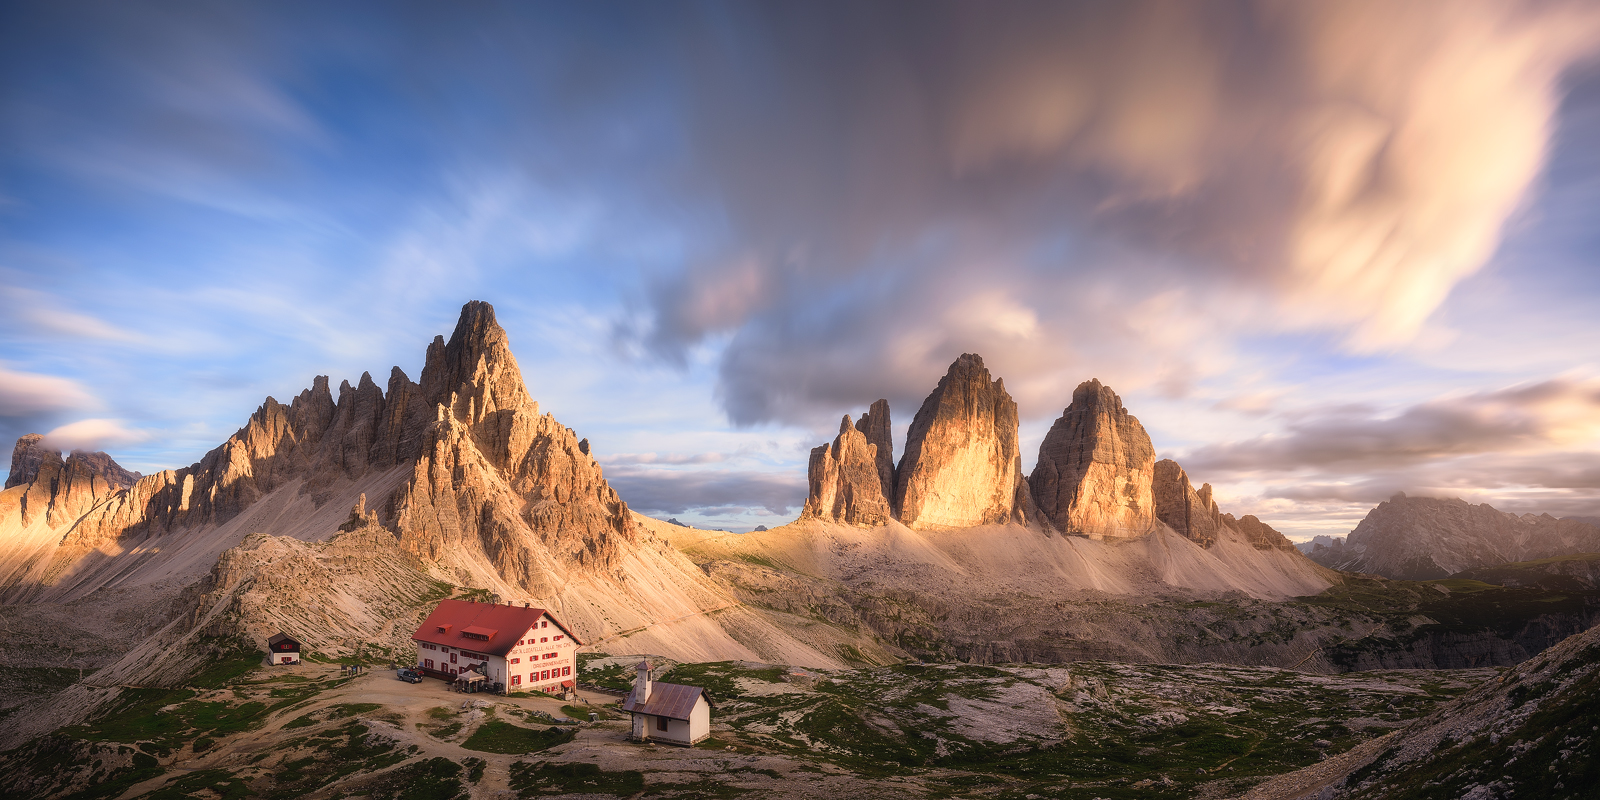 A Lightshow at the Dolomites